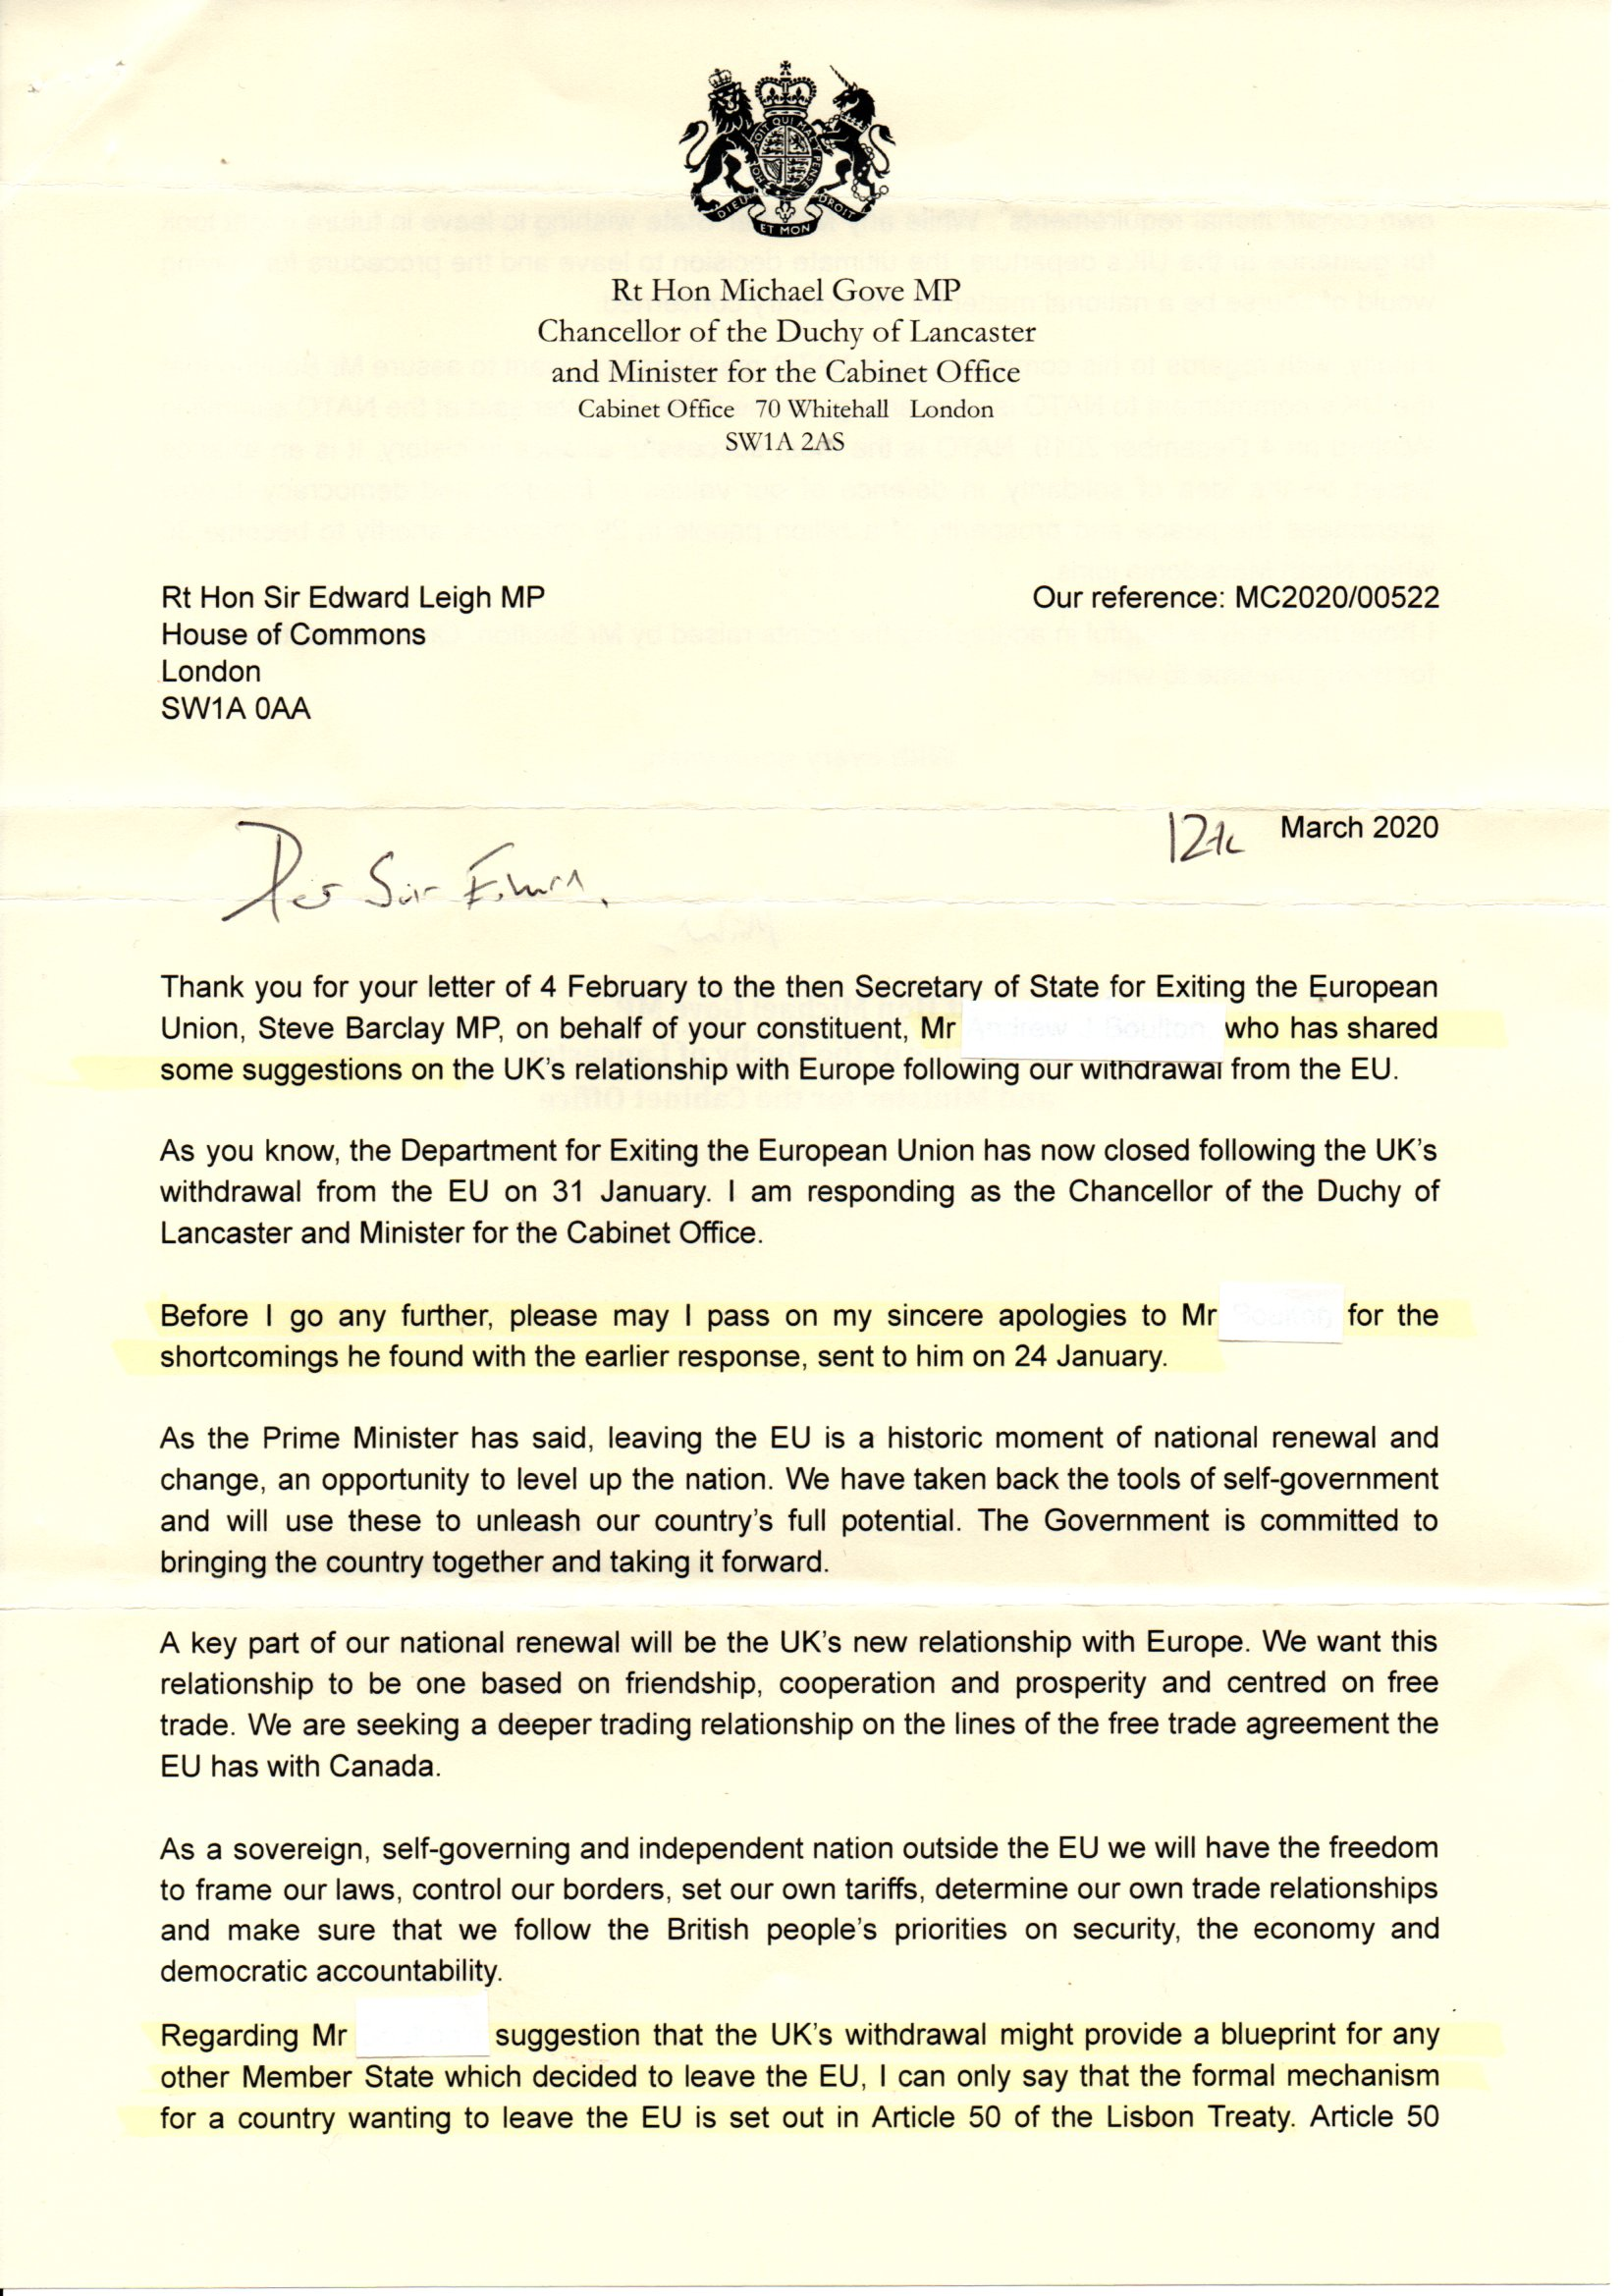 NEC 1 from Gove.jpg